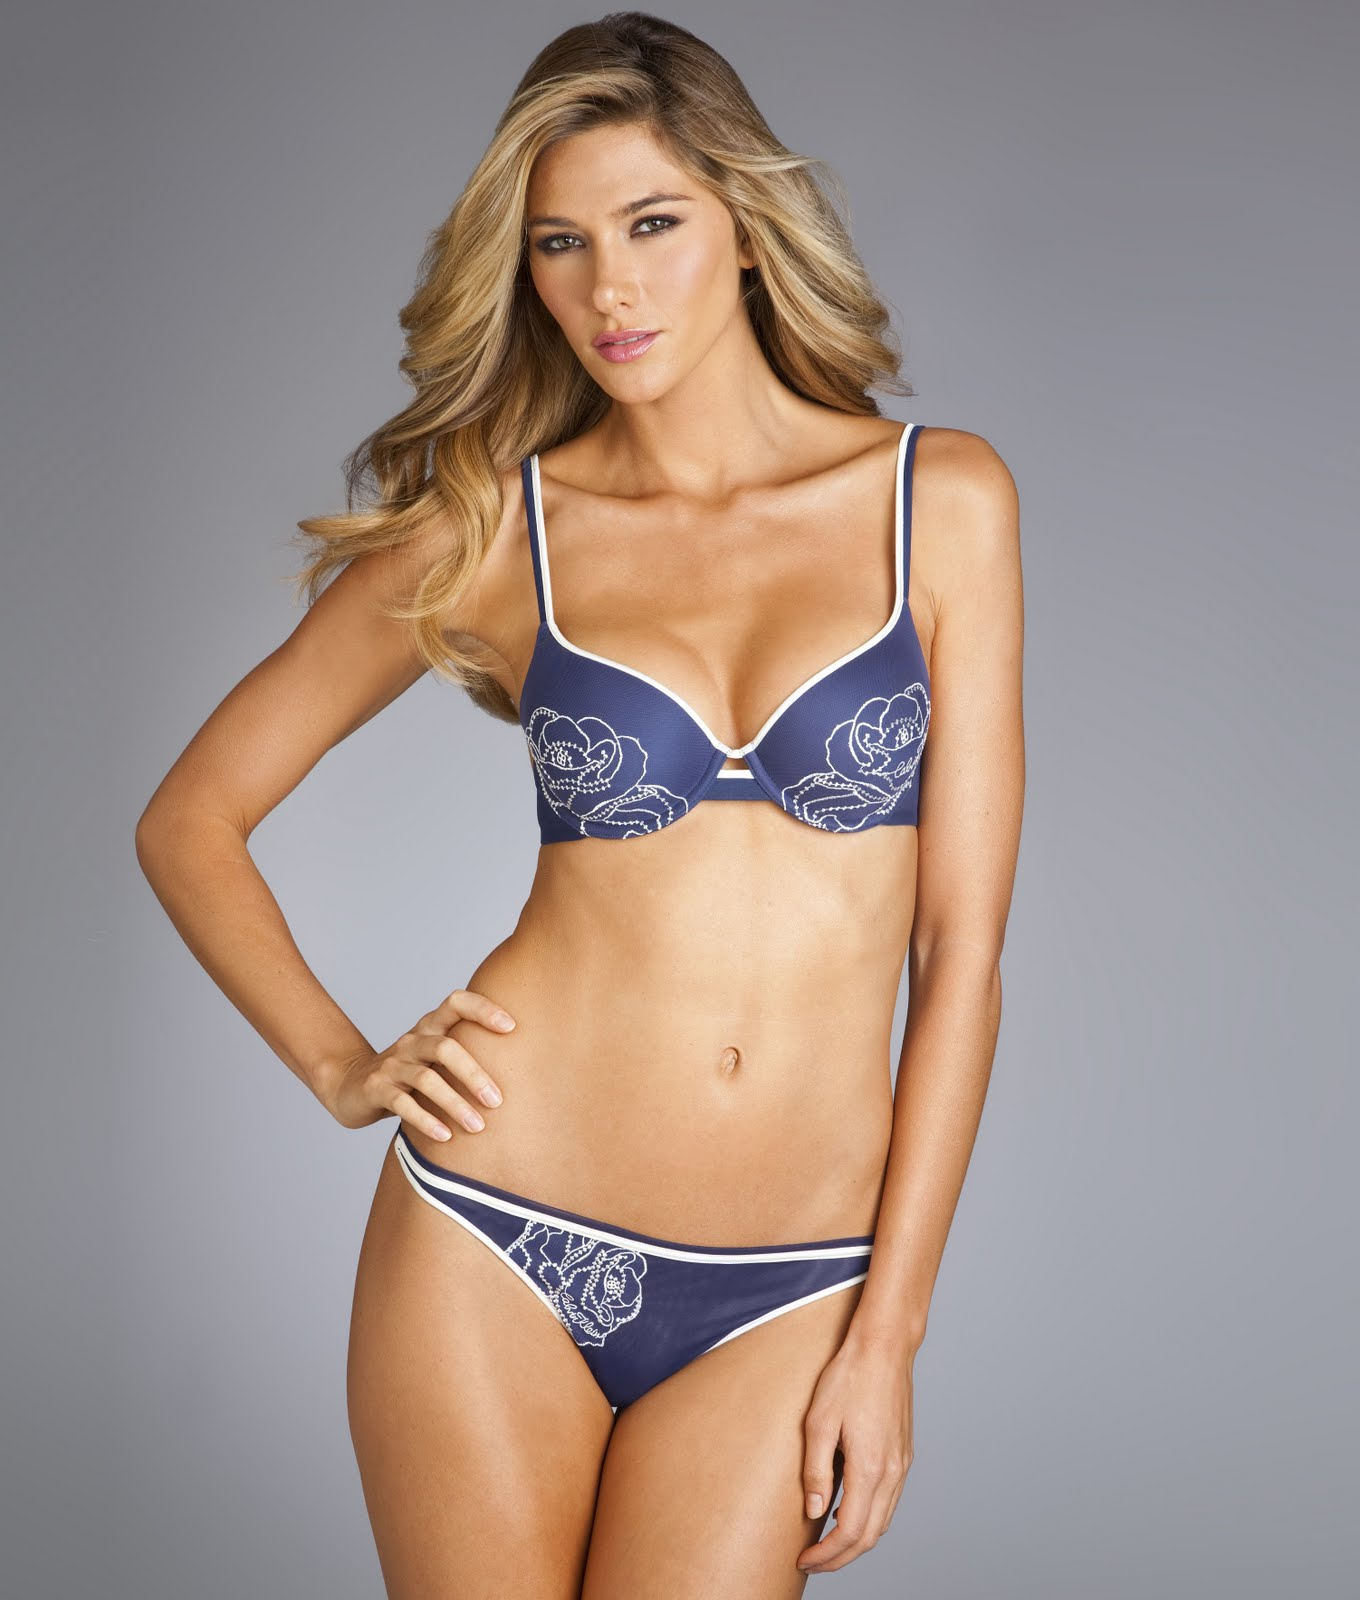 Global Buzz Times Maggi Caruthers Bra Size And